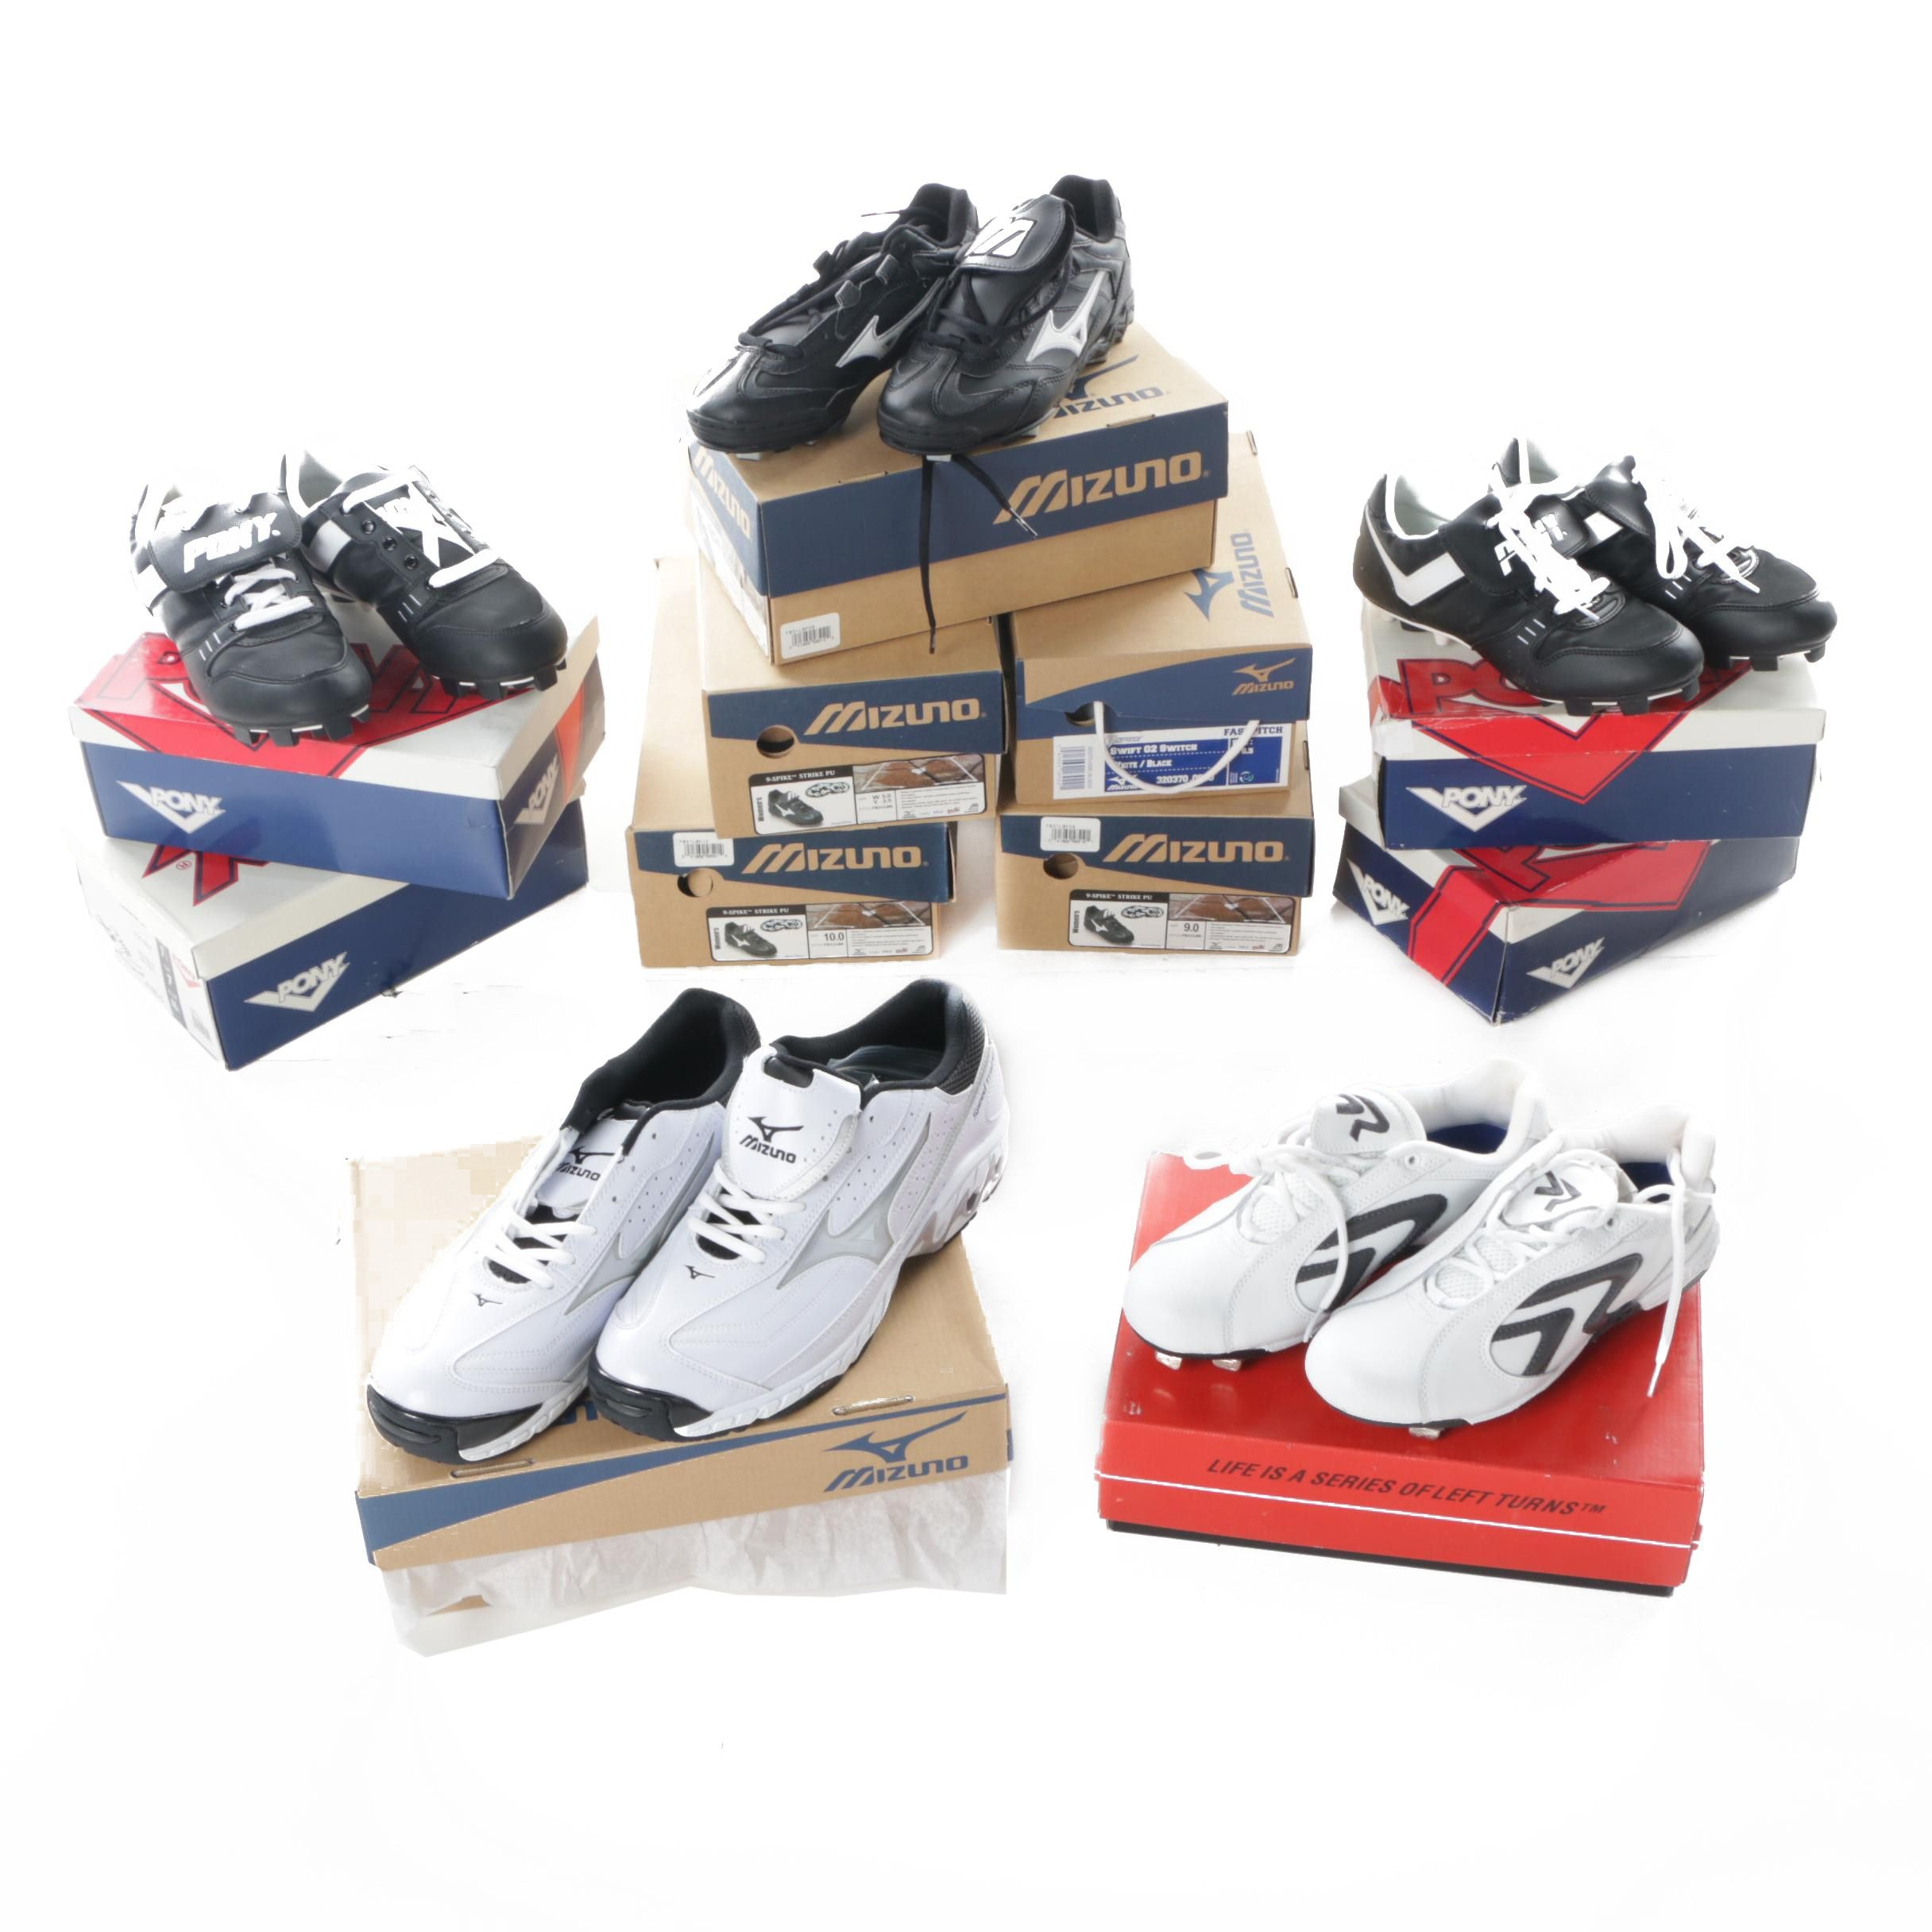 Cleats and Sneakers Including Pony